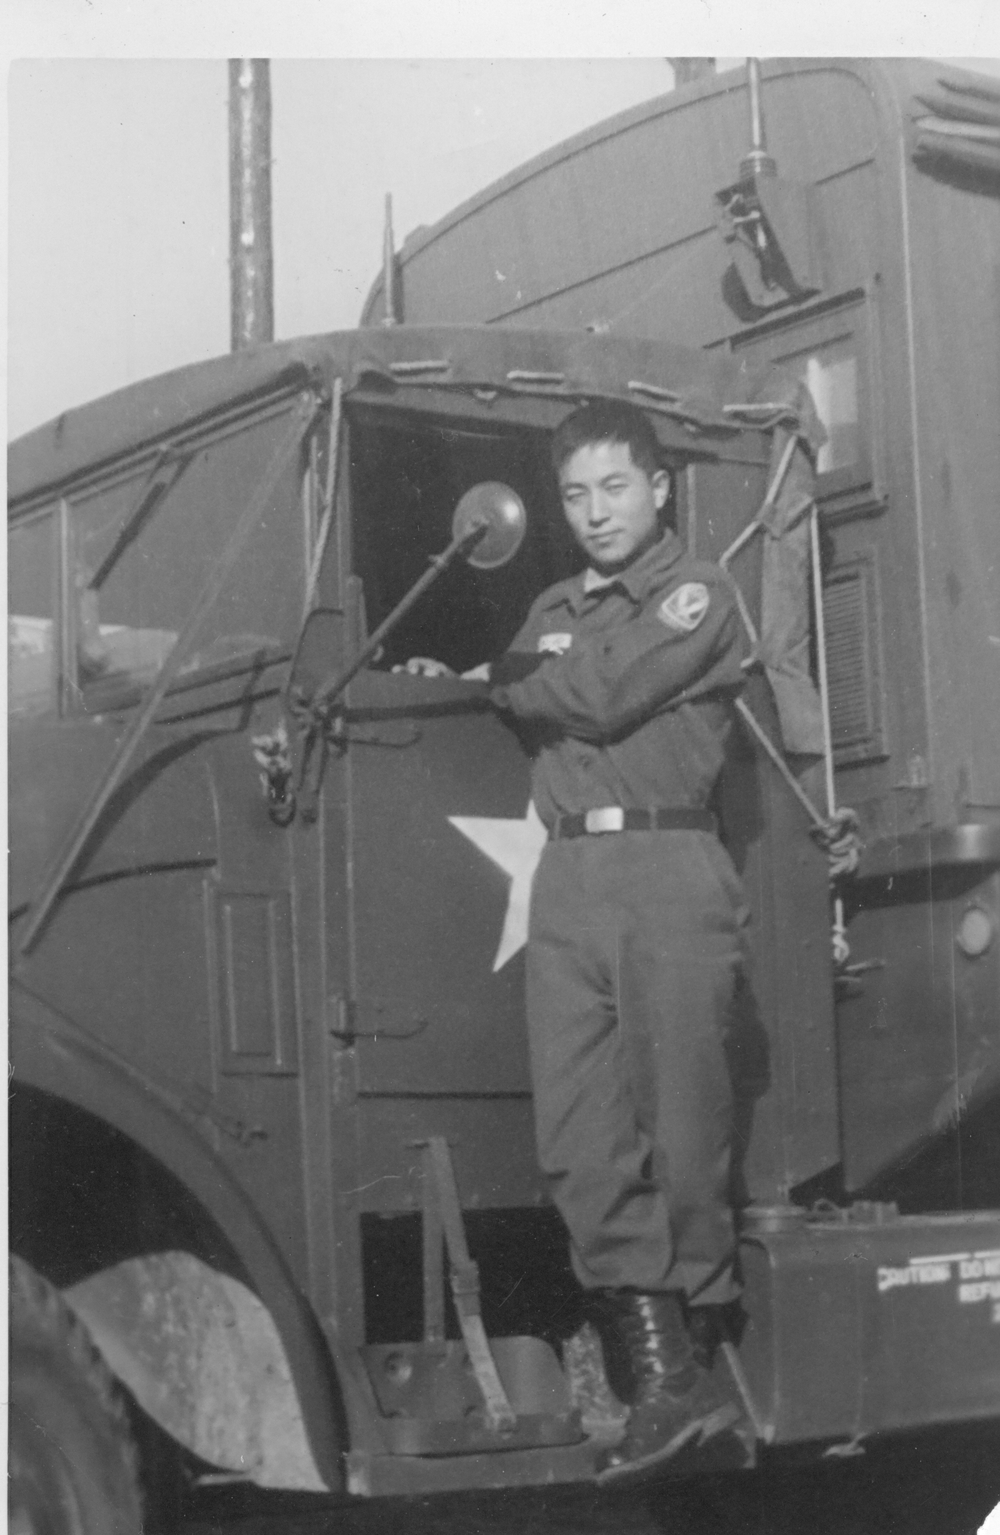 Serving in the U.S. 8th Army headquarters as an attached Korean soldier